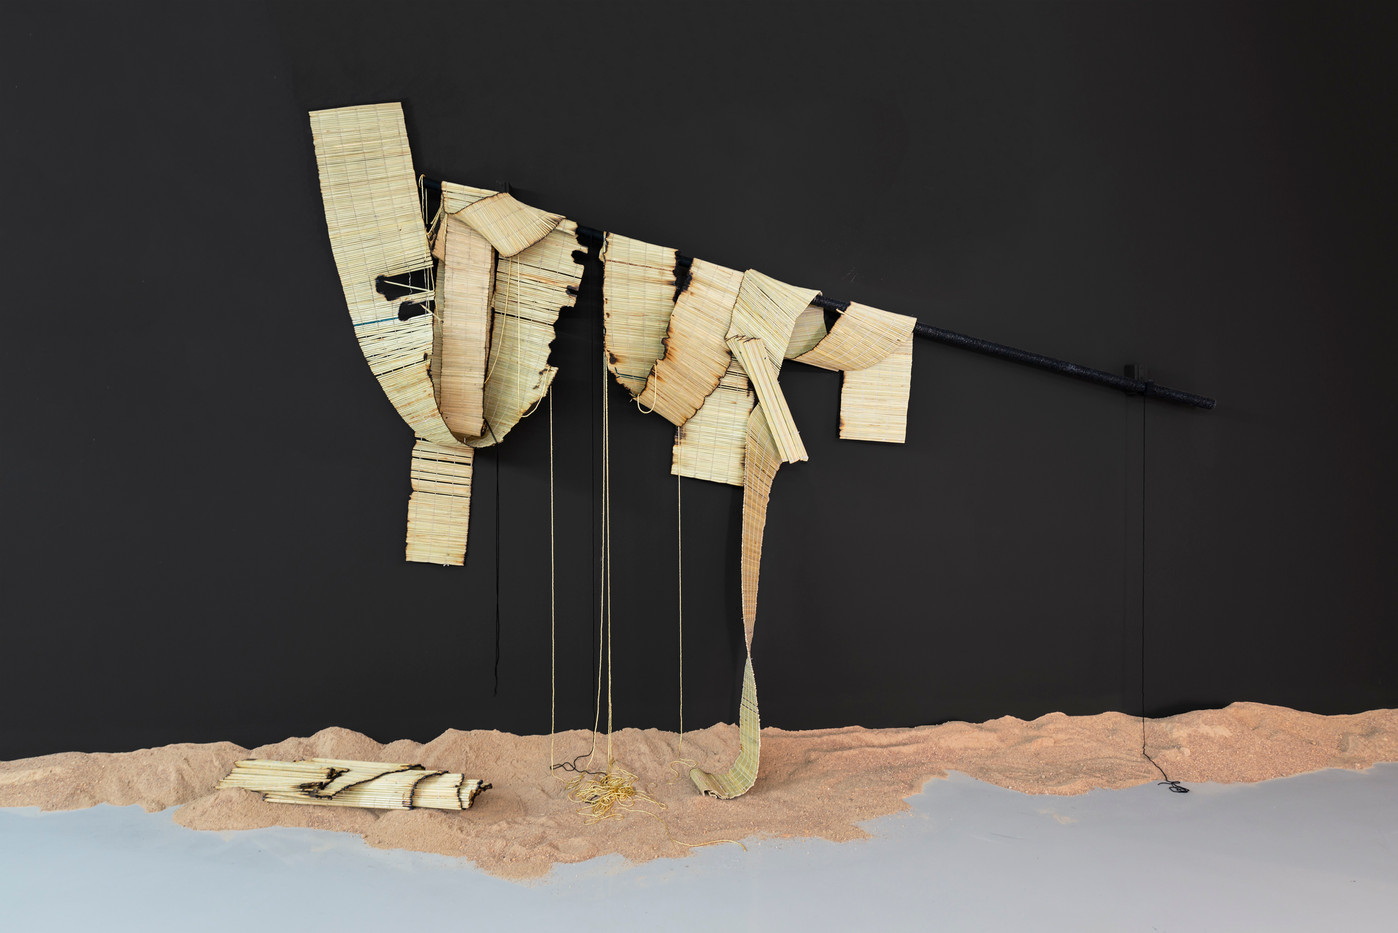 Simphiwe Buthelezi | Rapid expansion | 2020 | Wood, Straw Mats, Glass Beads and Oxidised Metal | Dimensions Variable